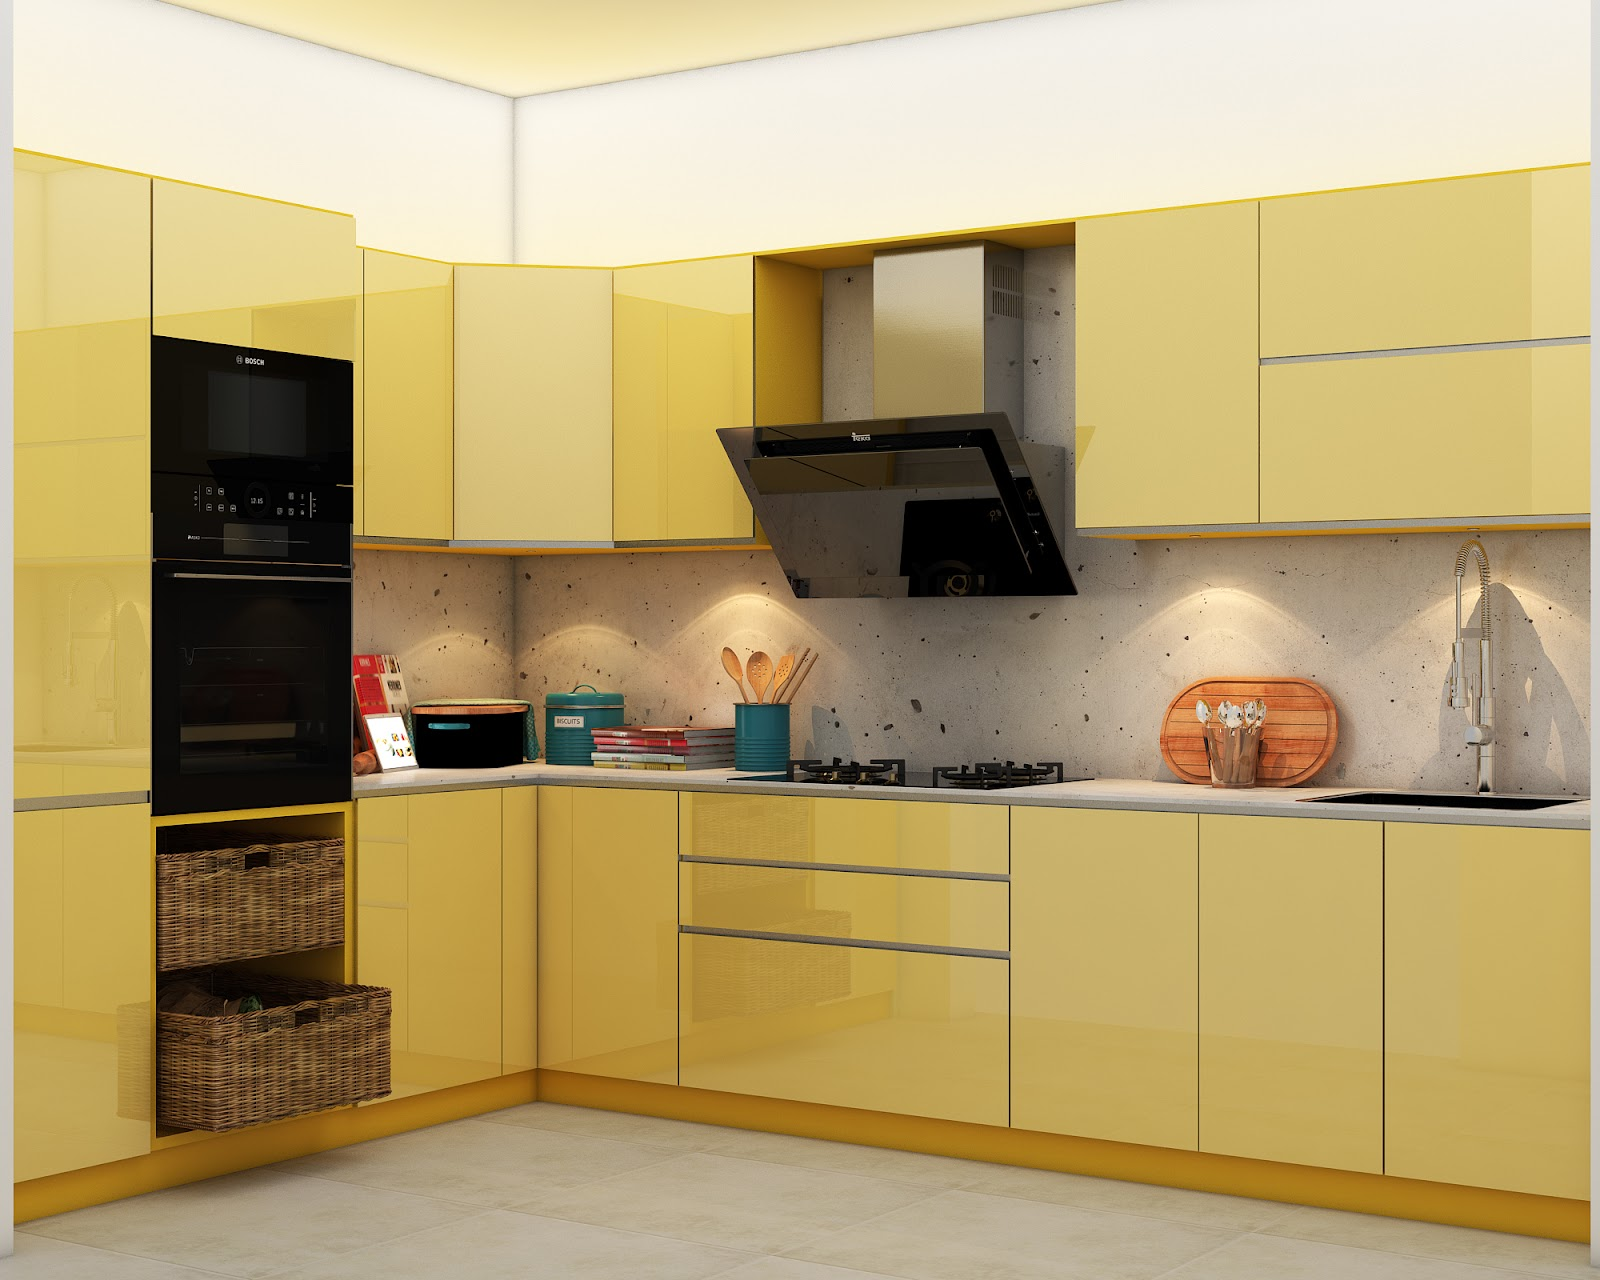 L-shaped kitchen layout